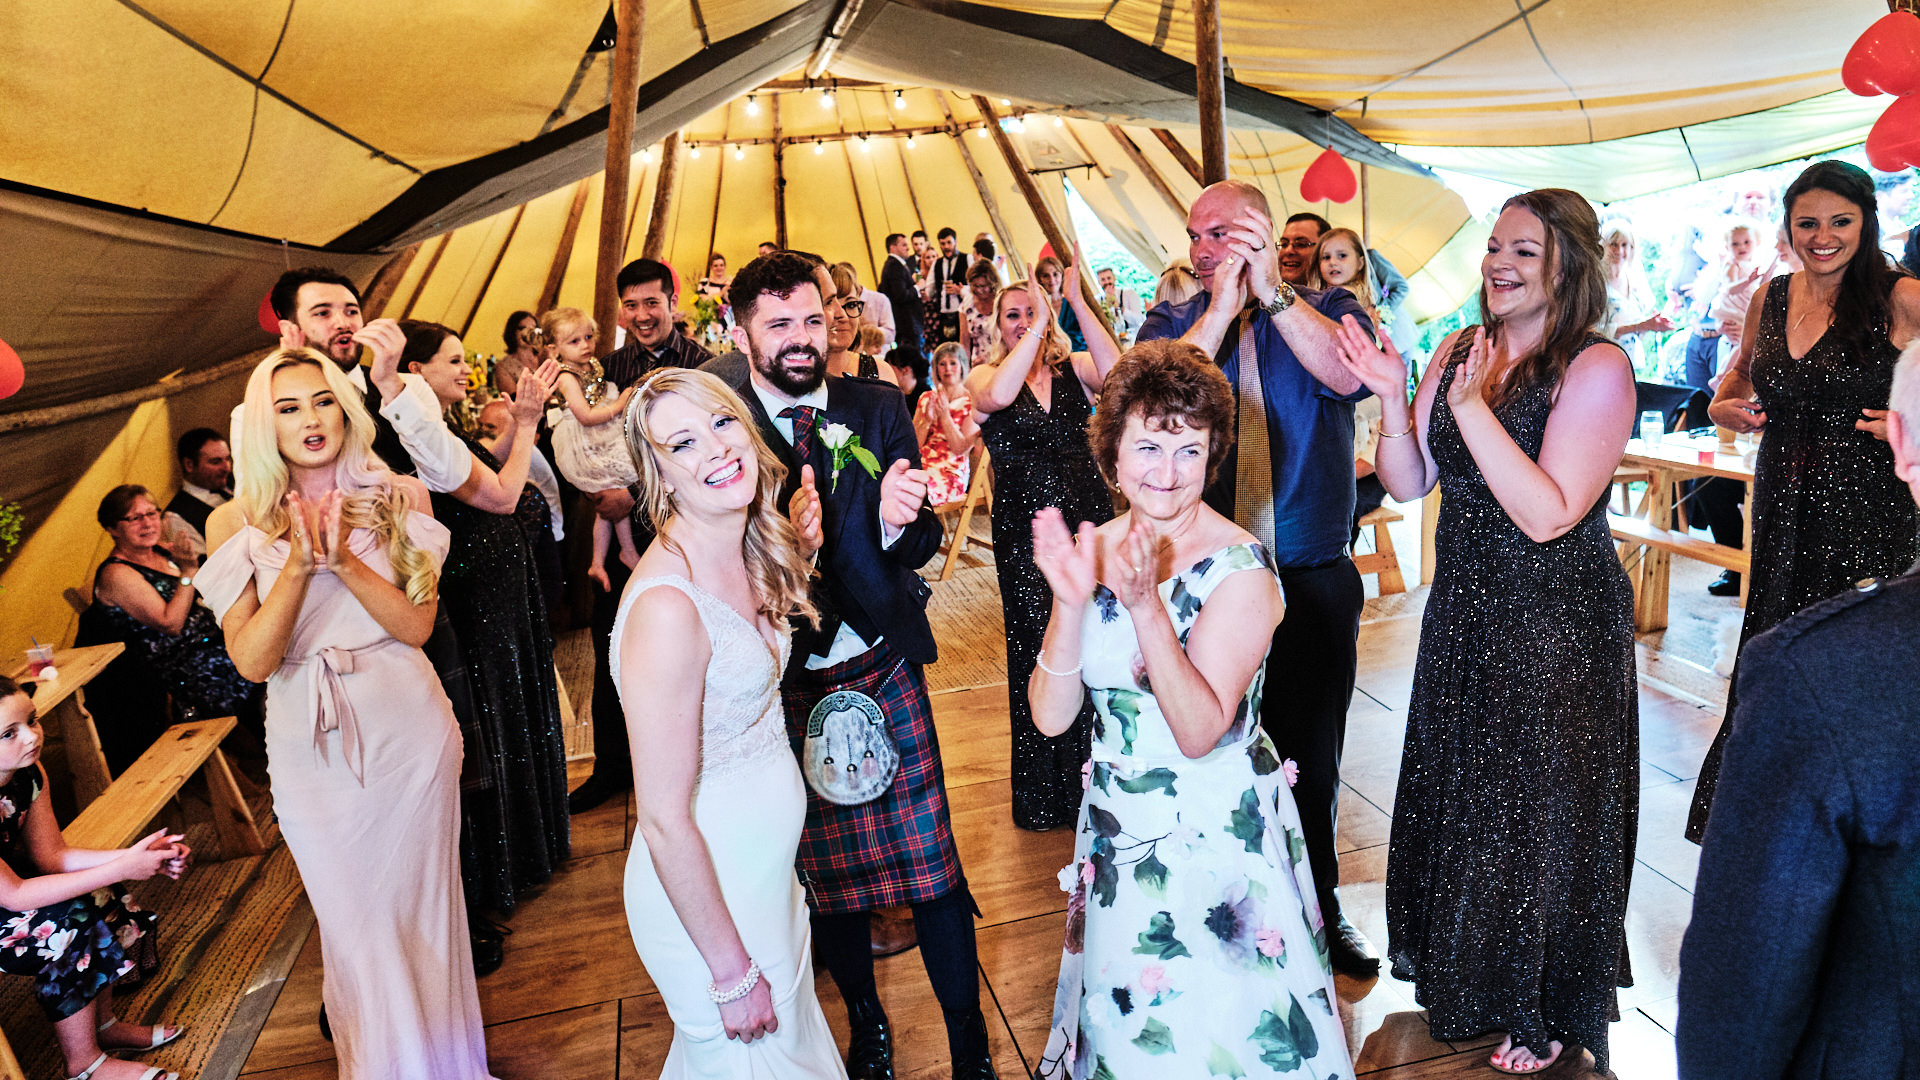 colour photograph of wedding guests clapping on the dance floor during the wedding reception